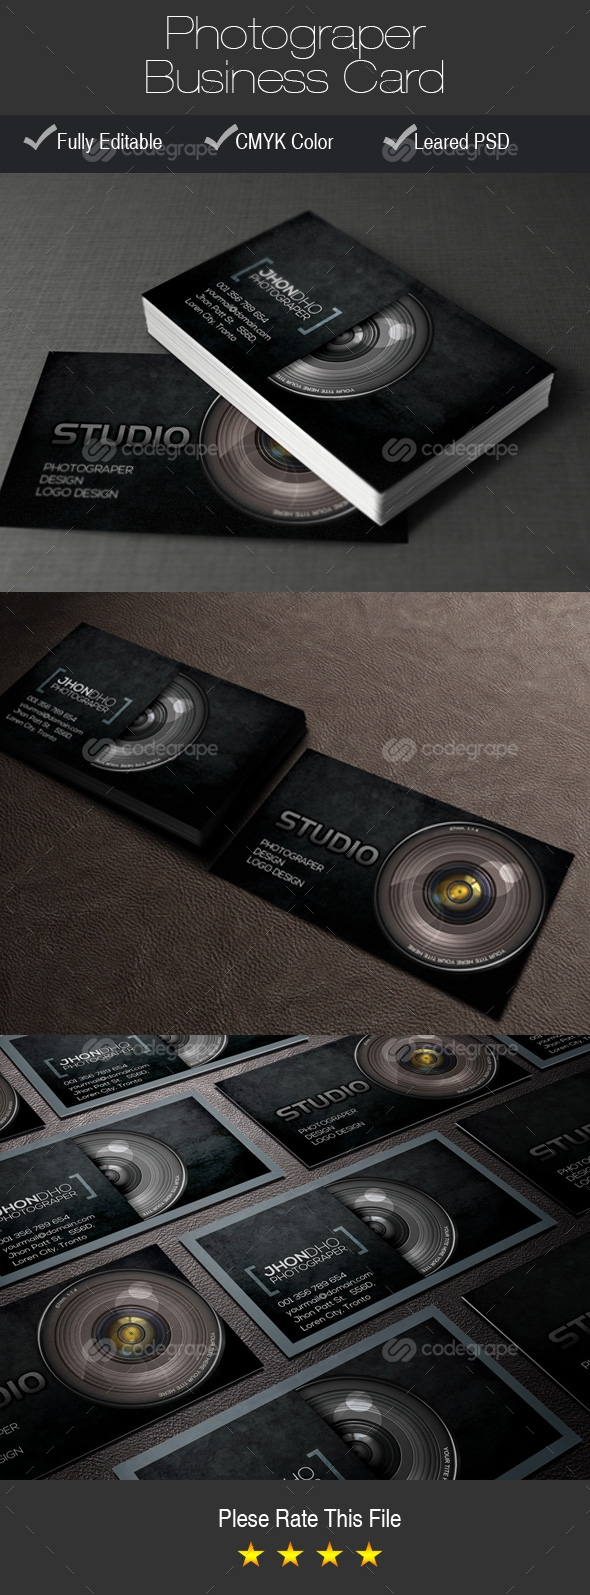 Photograper Business Card